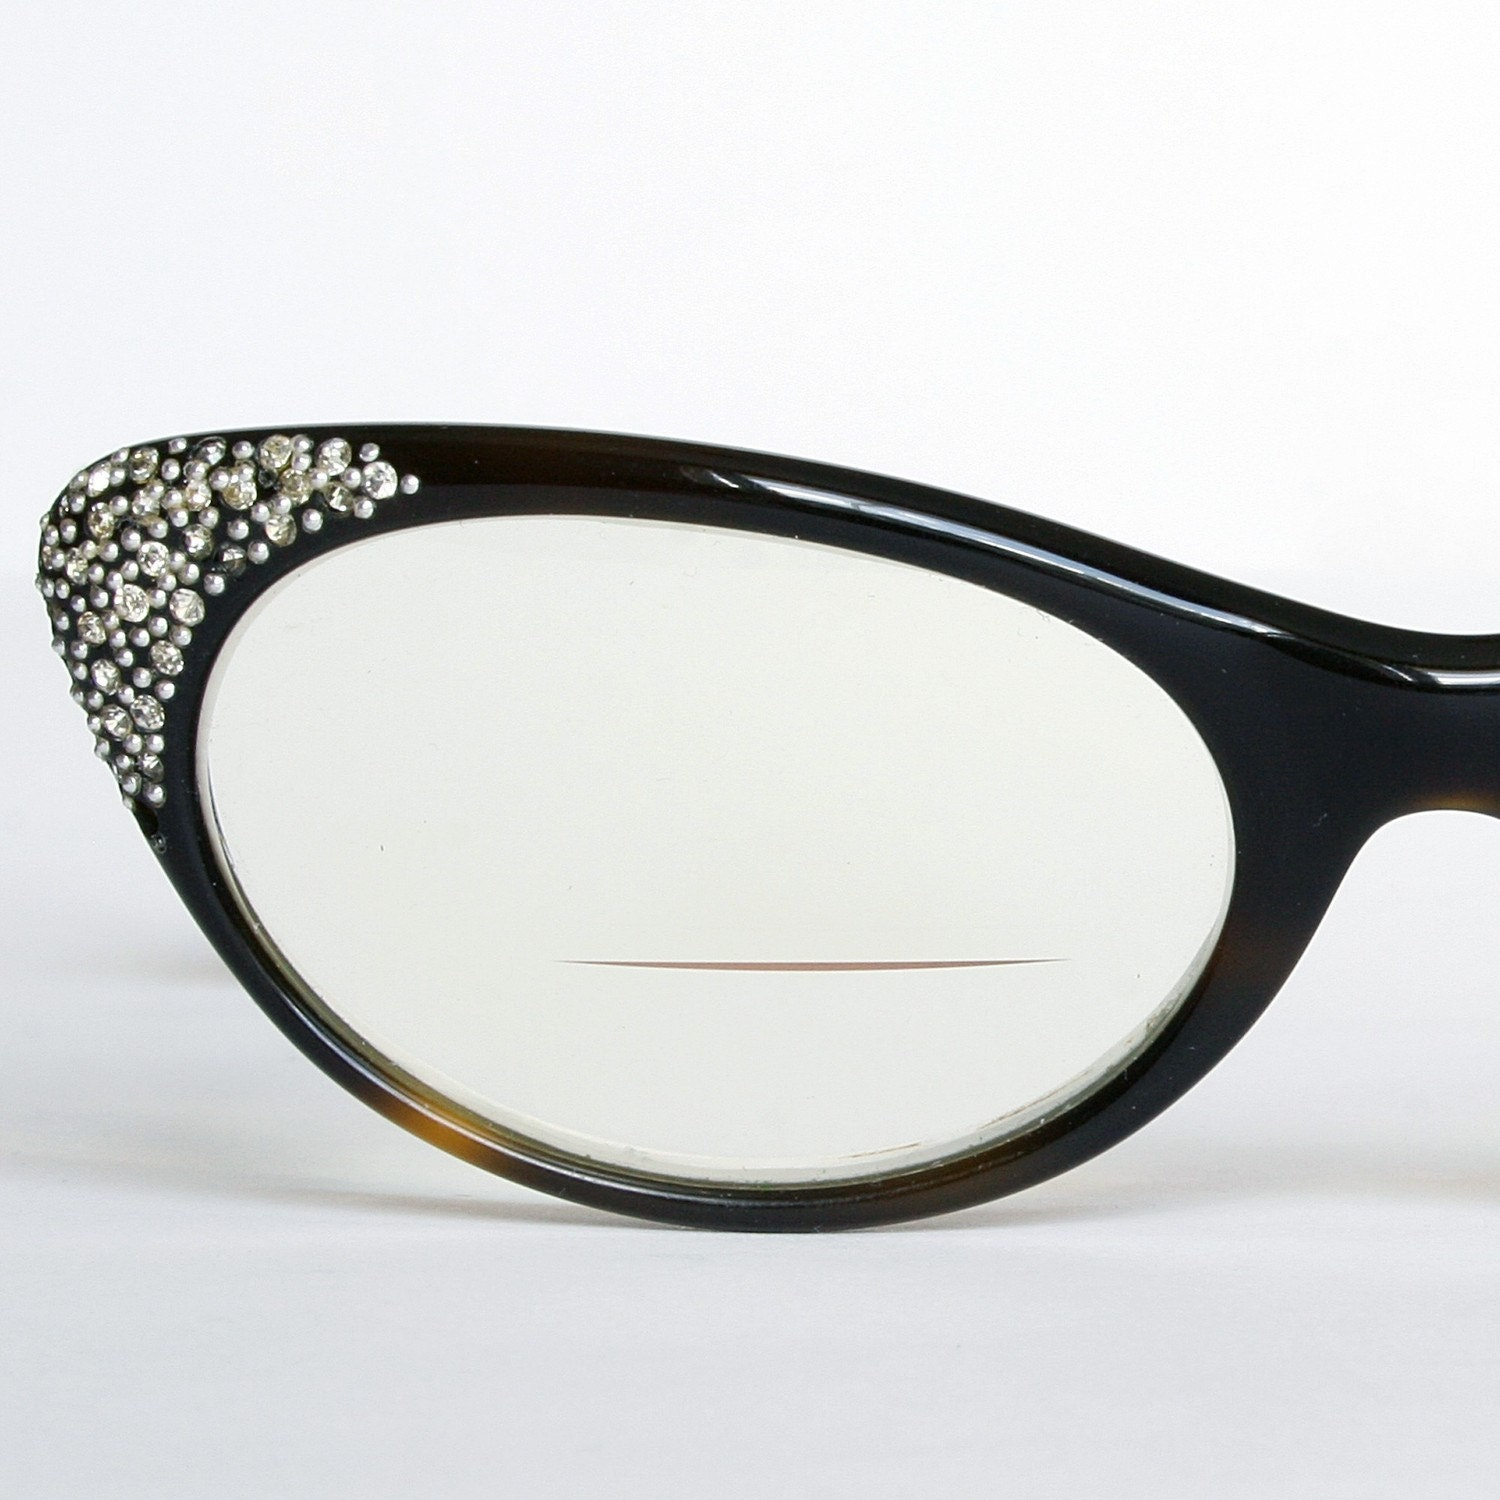 Cat Eye Frame Eye Glasses : Rhinestone Studded Cat Eye Glasses Frames by ...